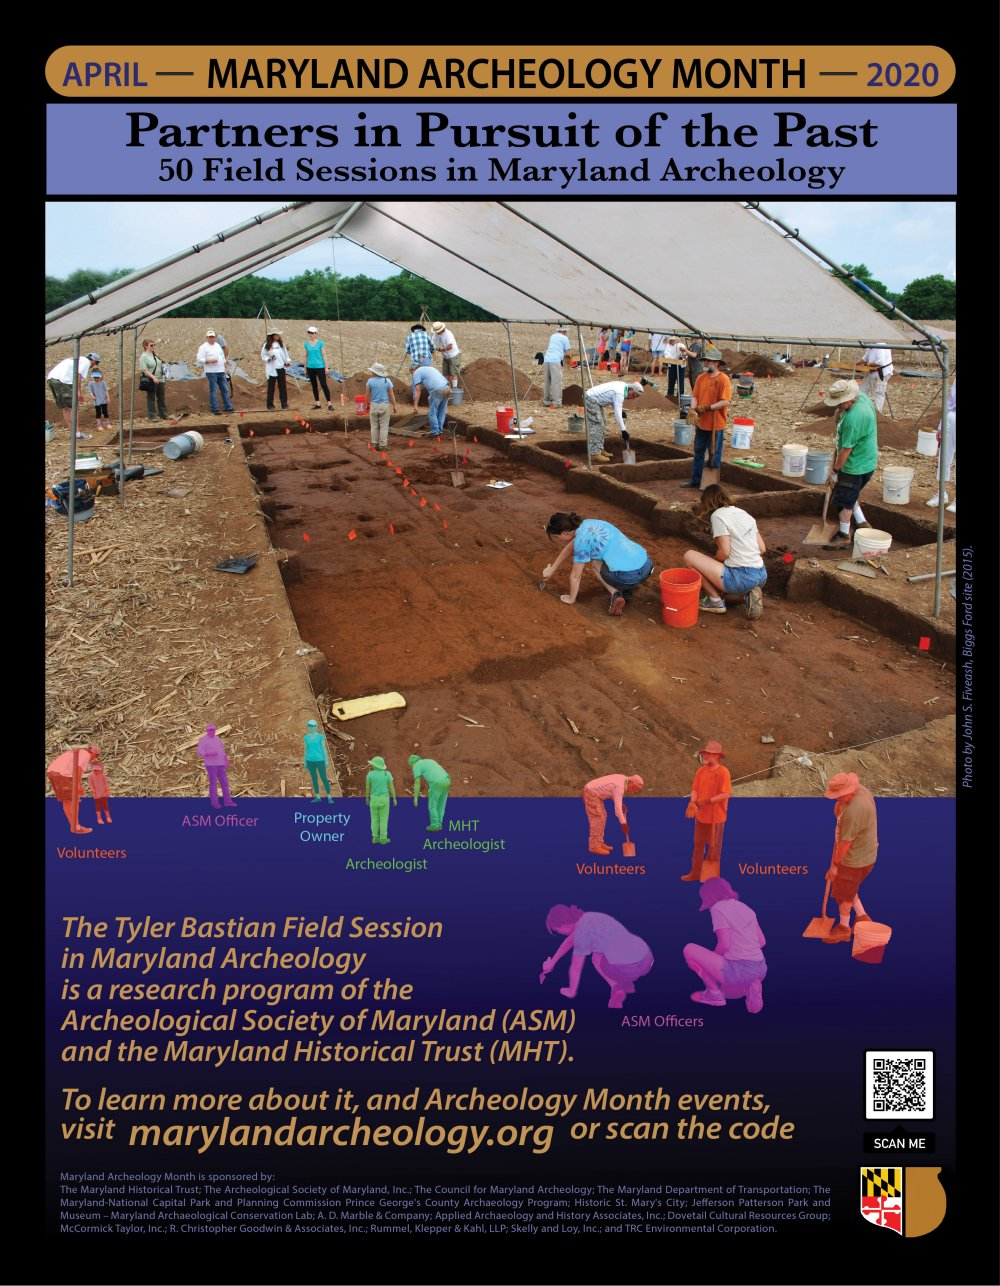 2020 Maryland Archeology Month Poster